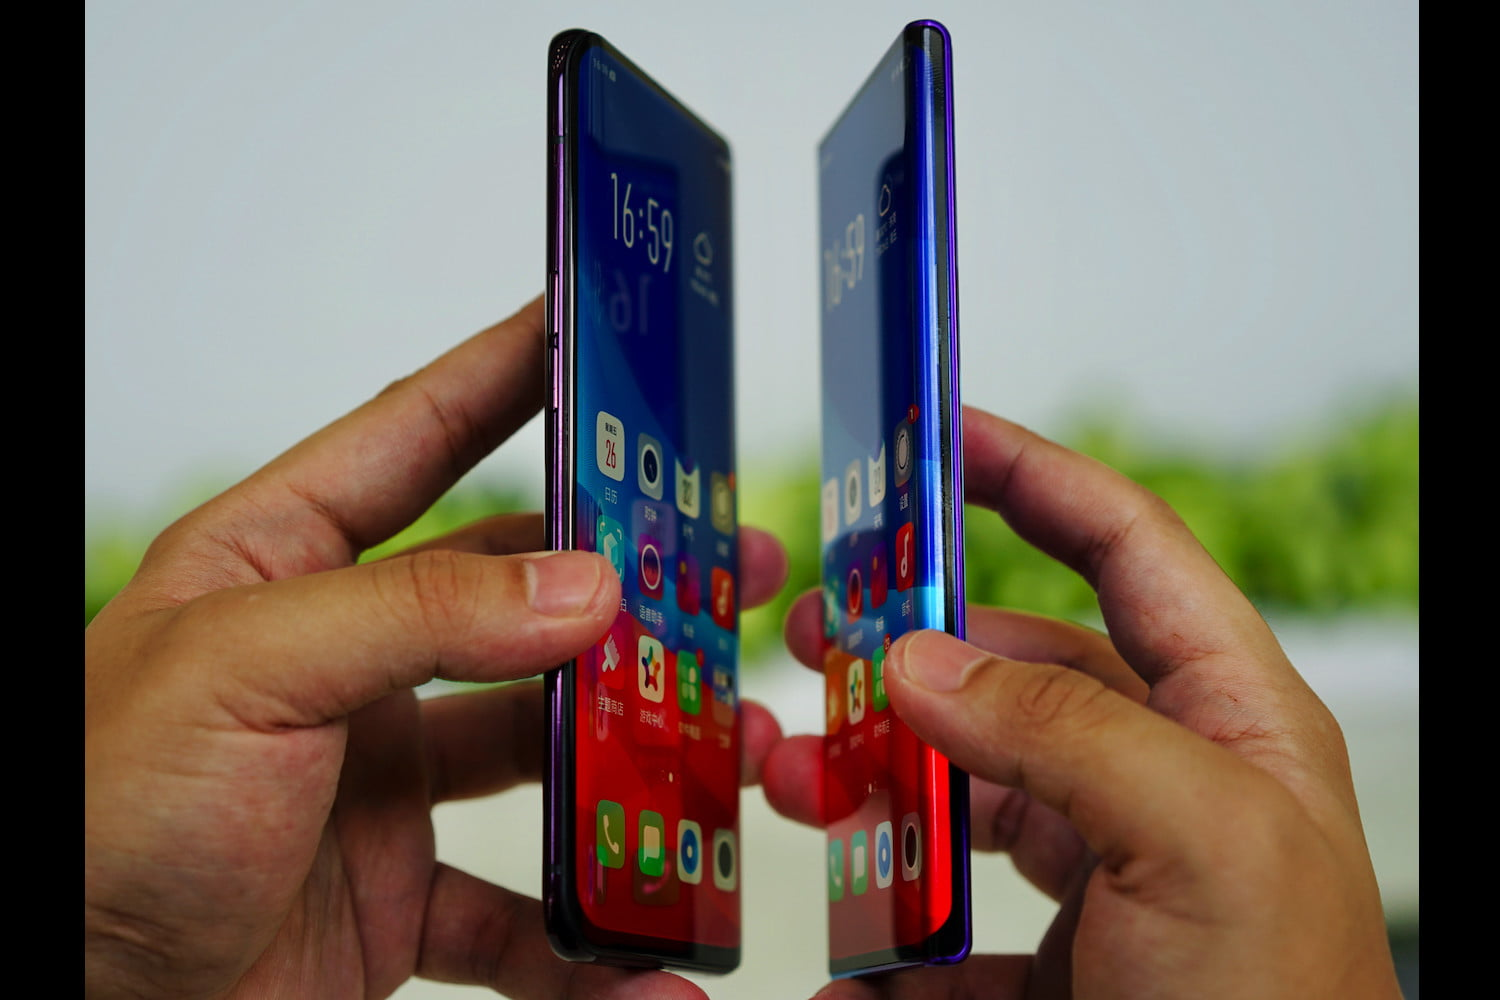 oppo waterfall screen news with find x